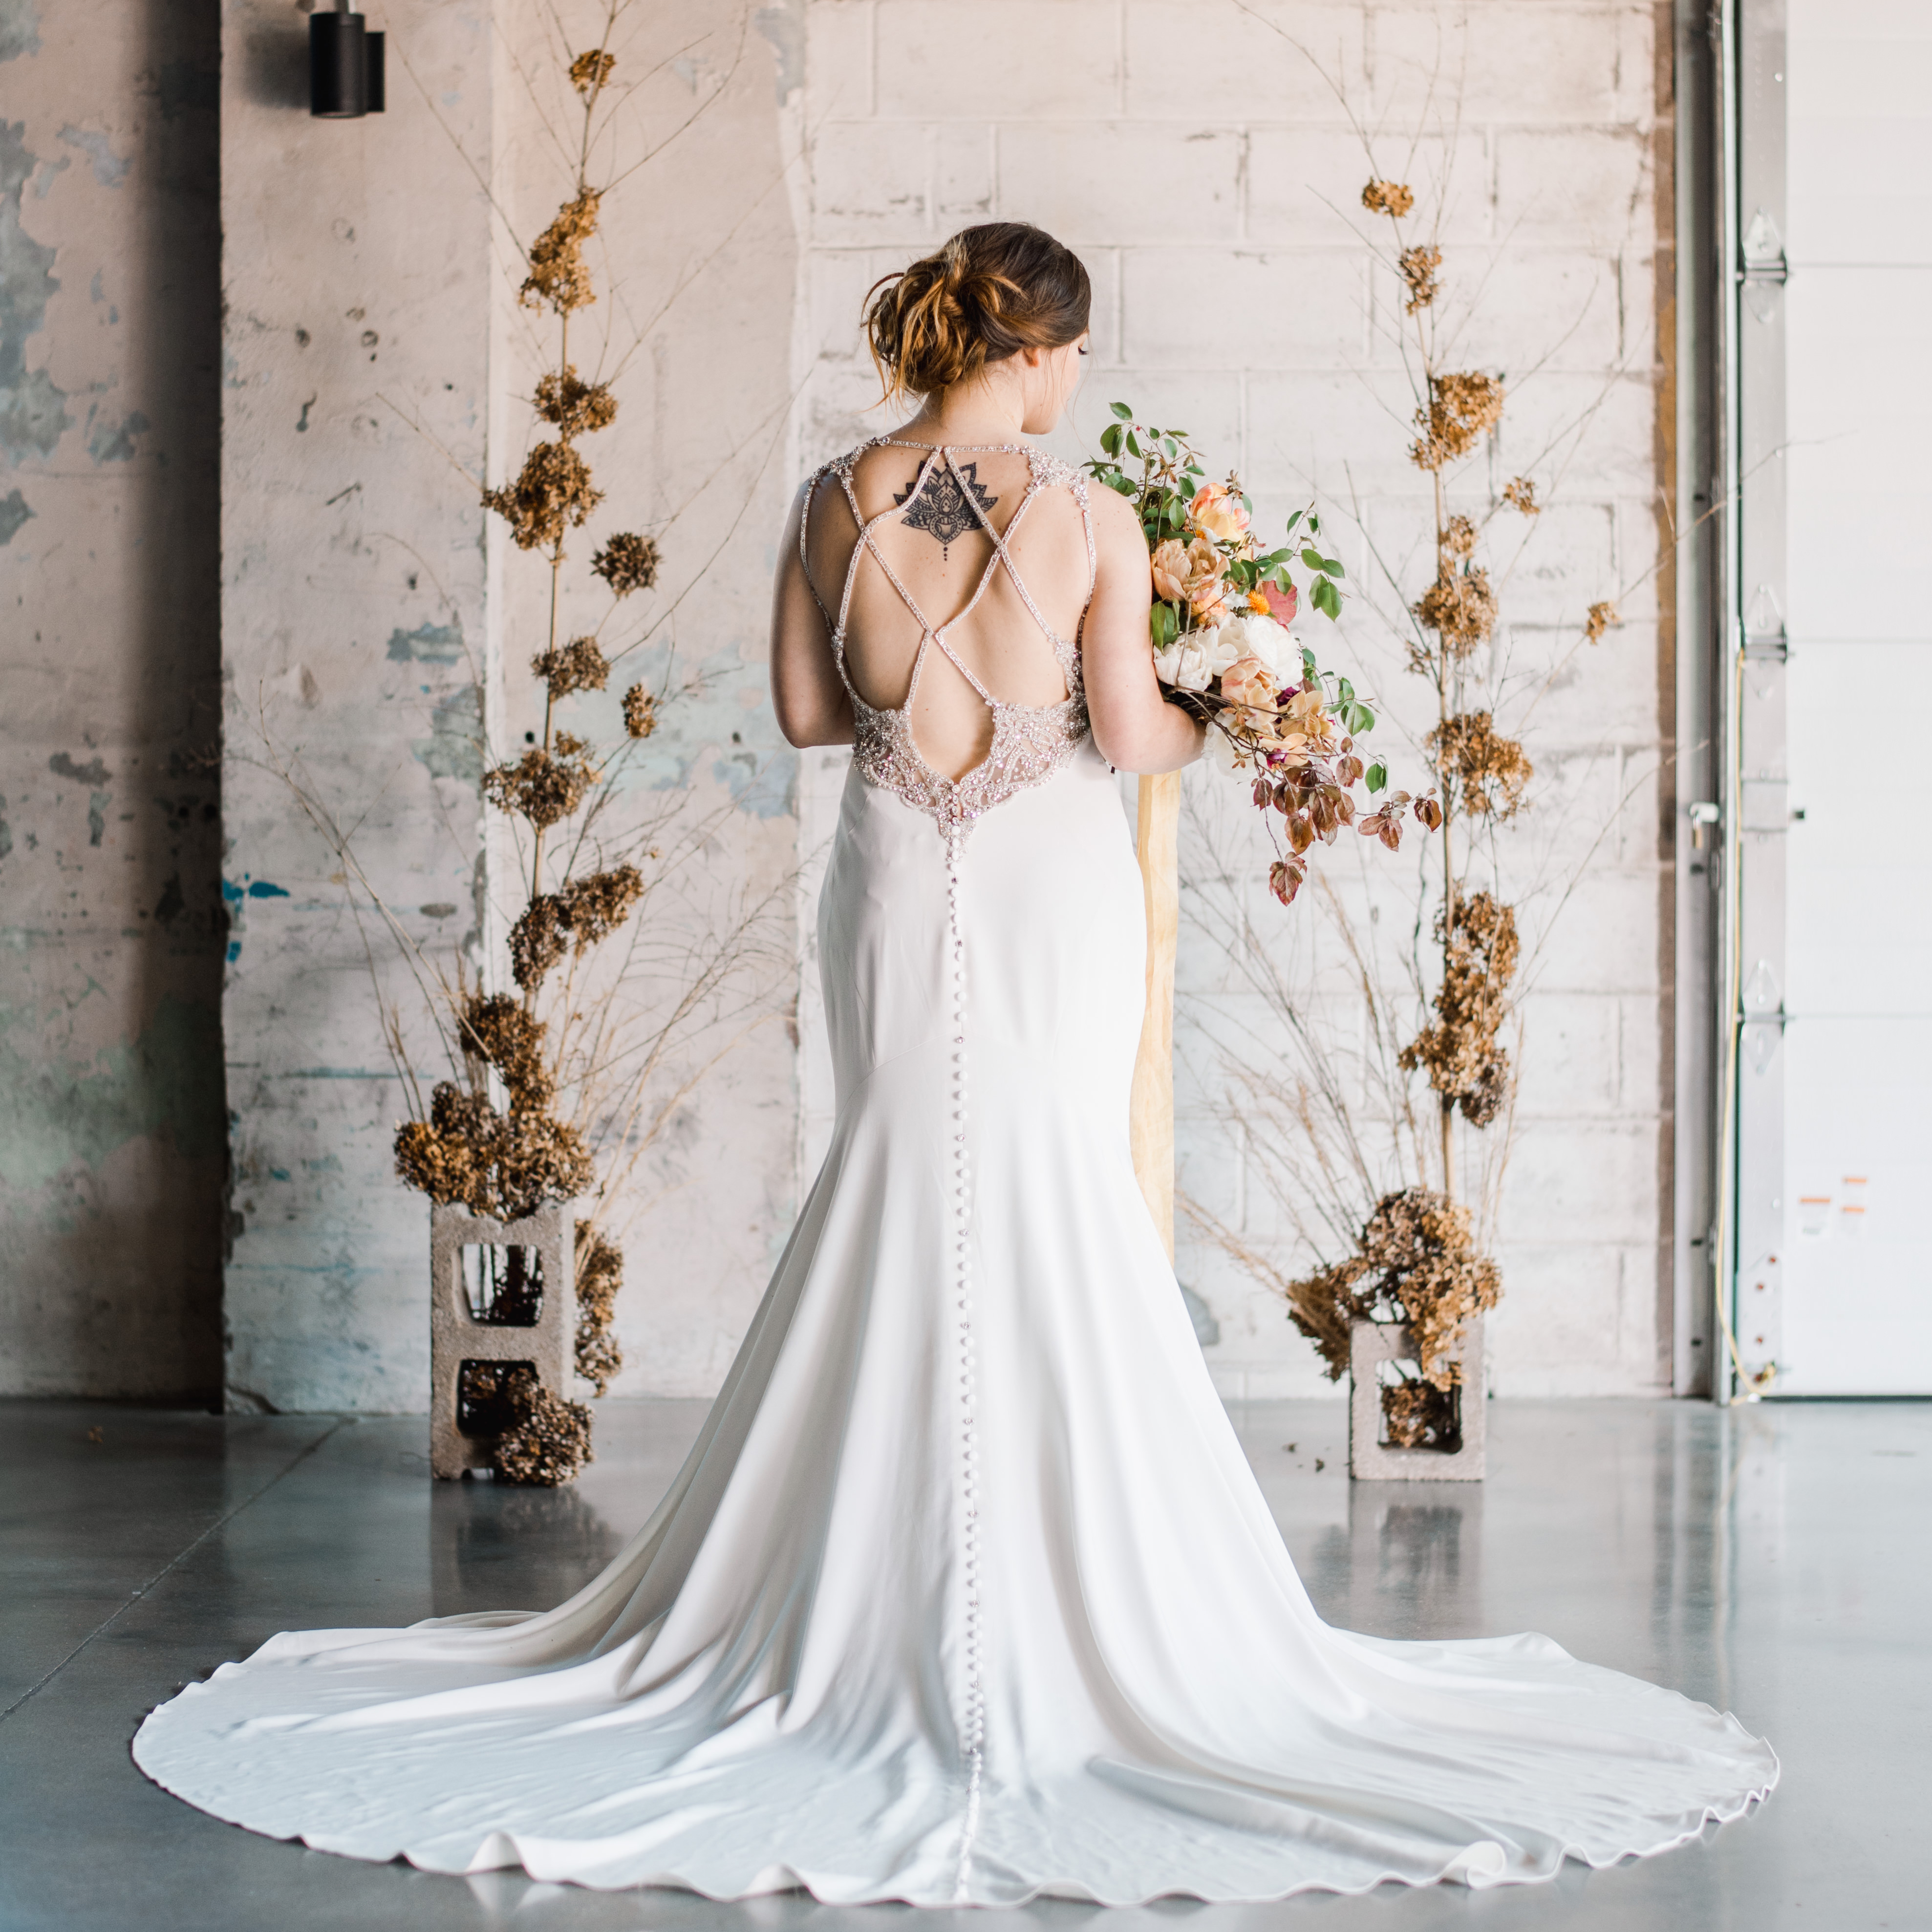 bride with open back dress at industrial venue